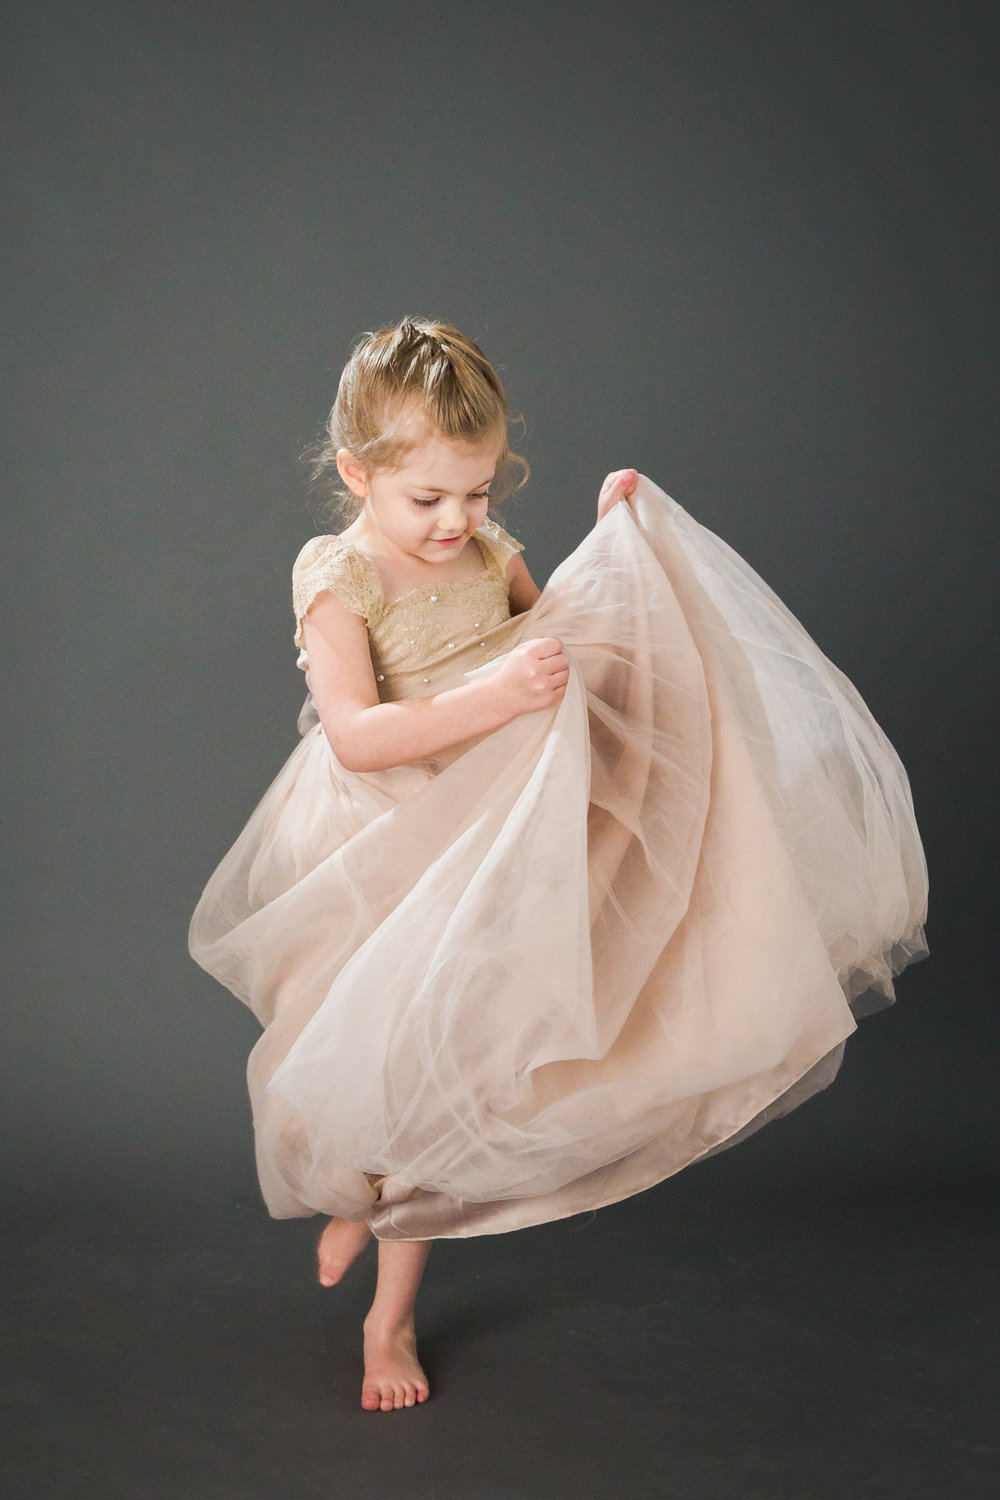 Little Girl Spinning in Gown